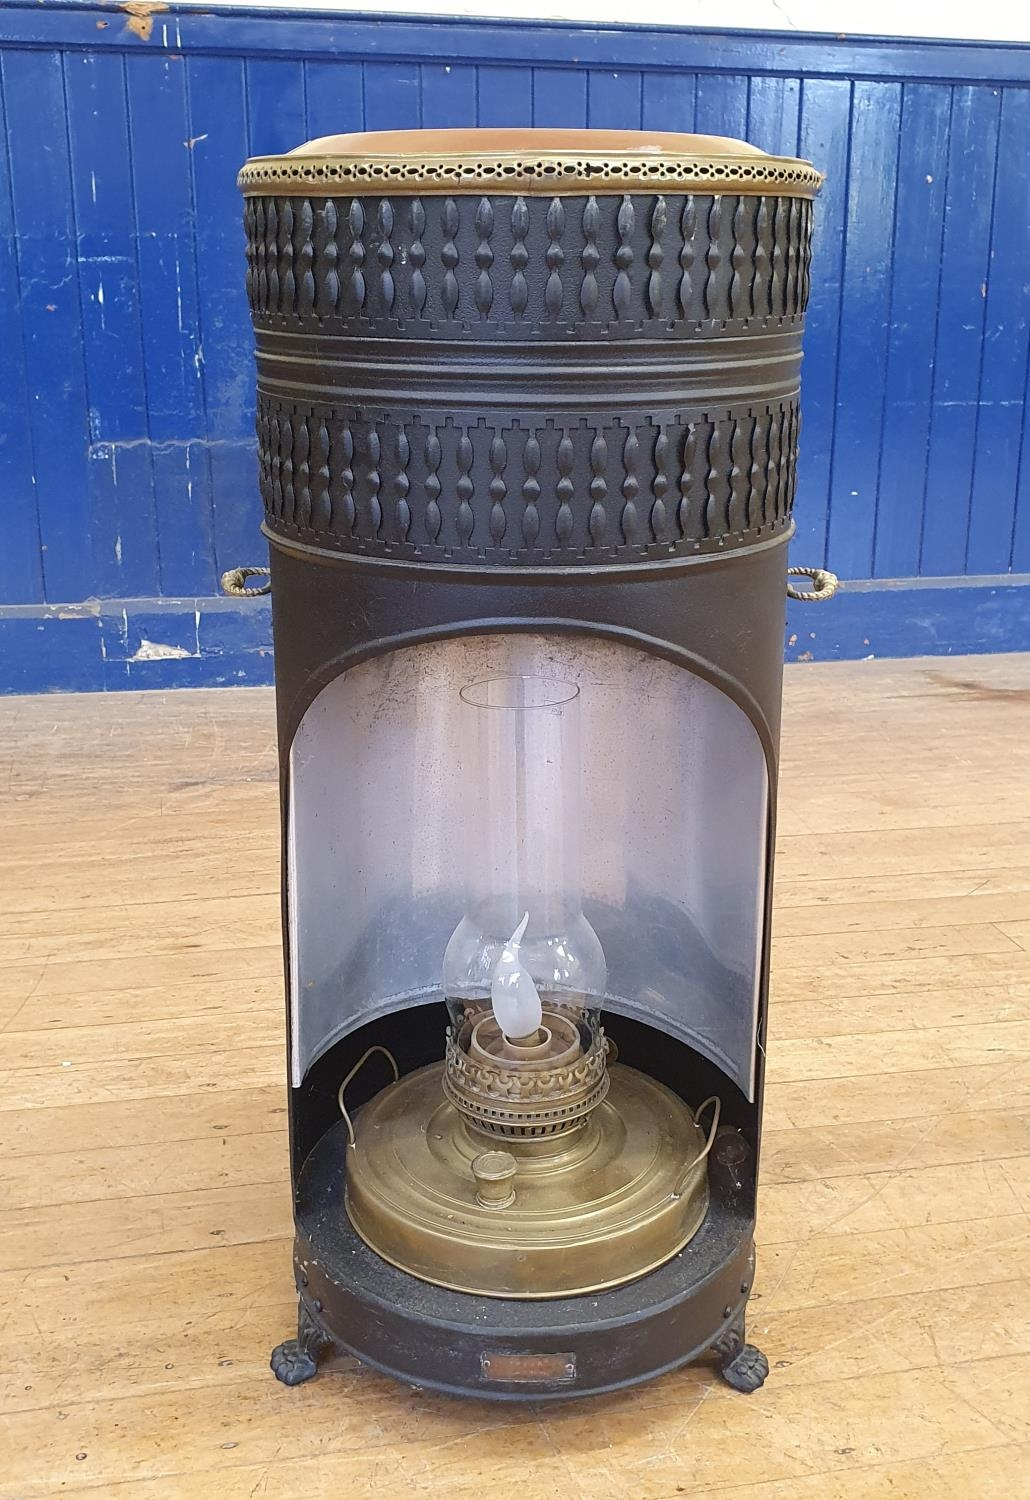 A metal conservatory heater, converted to electricity, 85 cm high